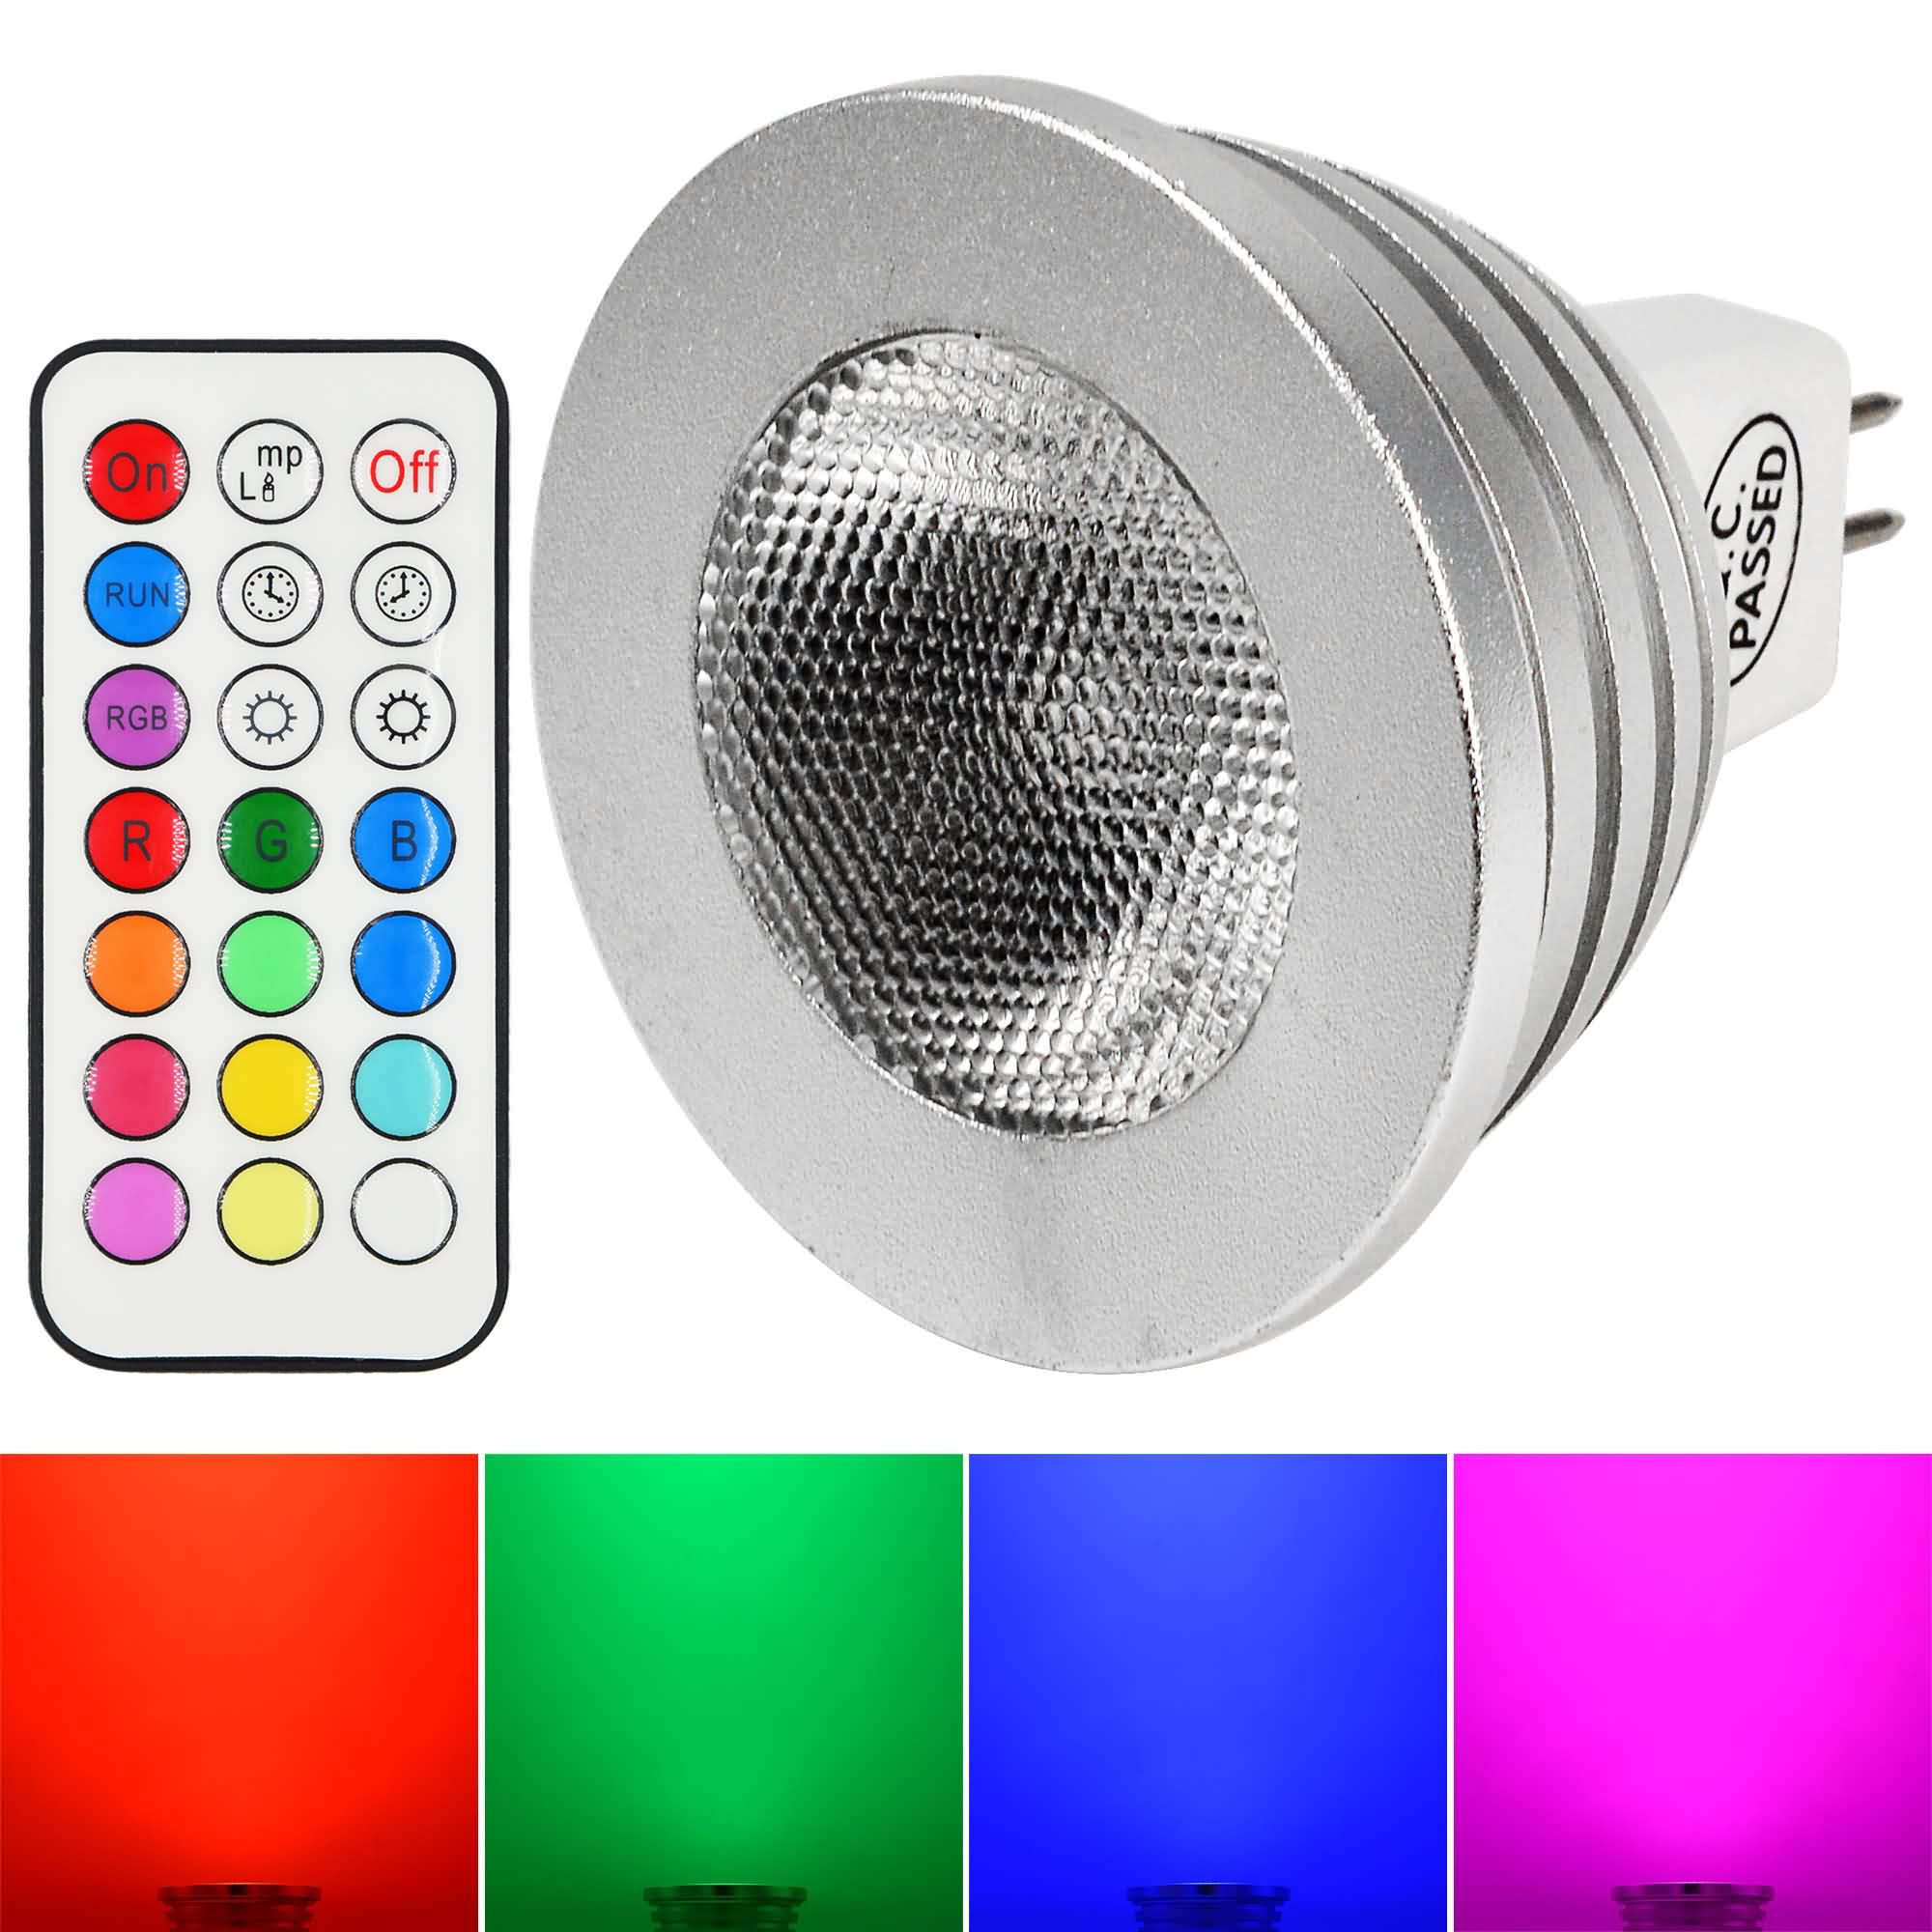 MENGS® MR16 4W LED RGB Light 16 Colour changing SMD LEDs LED Spotlight lamp Bulb with IR Remote Control - multicolor Dimmable